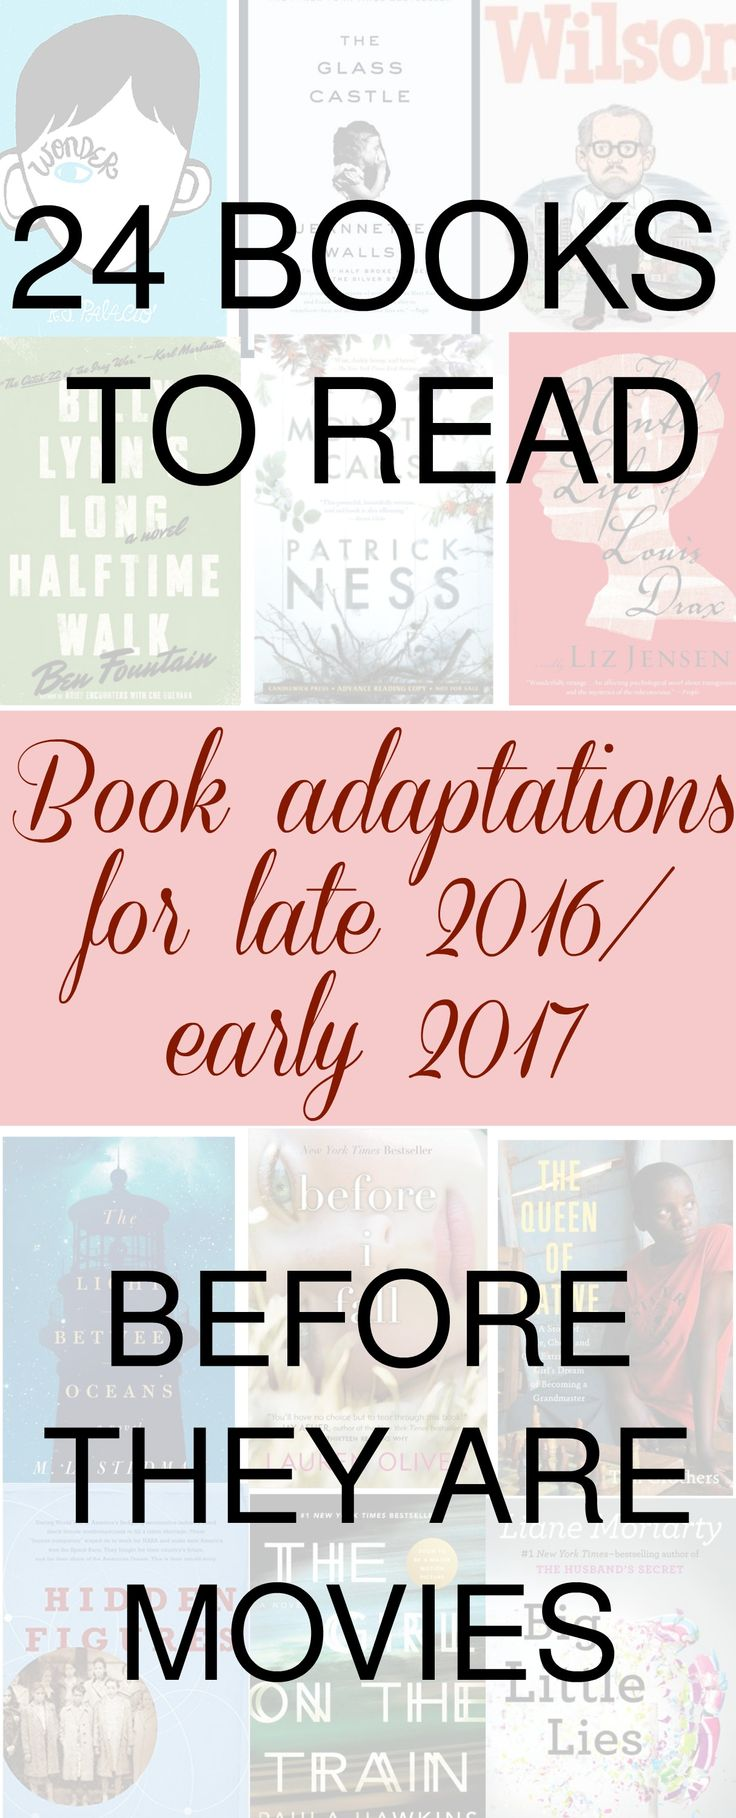 Your Guide To Book-to-Movie Adaptations for 2016/2017